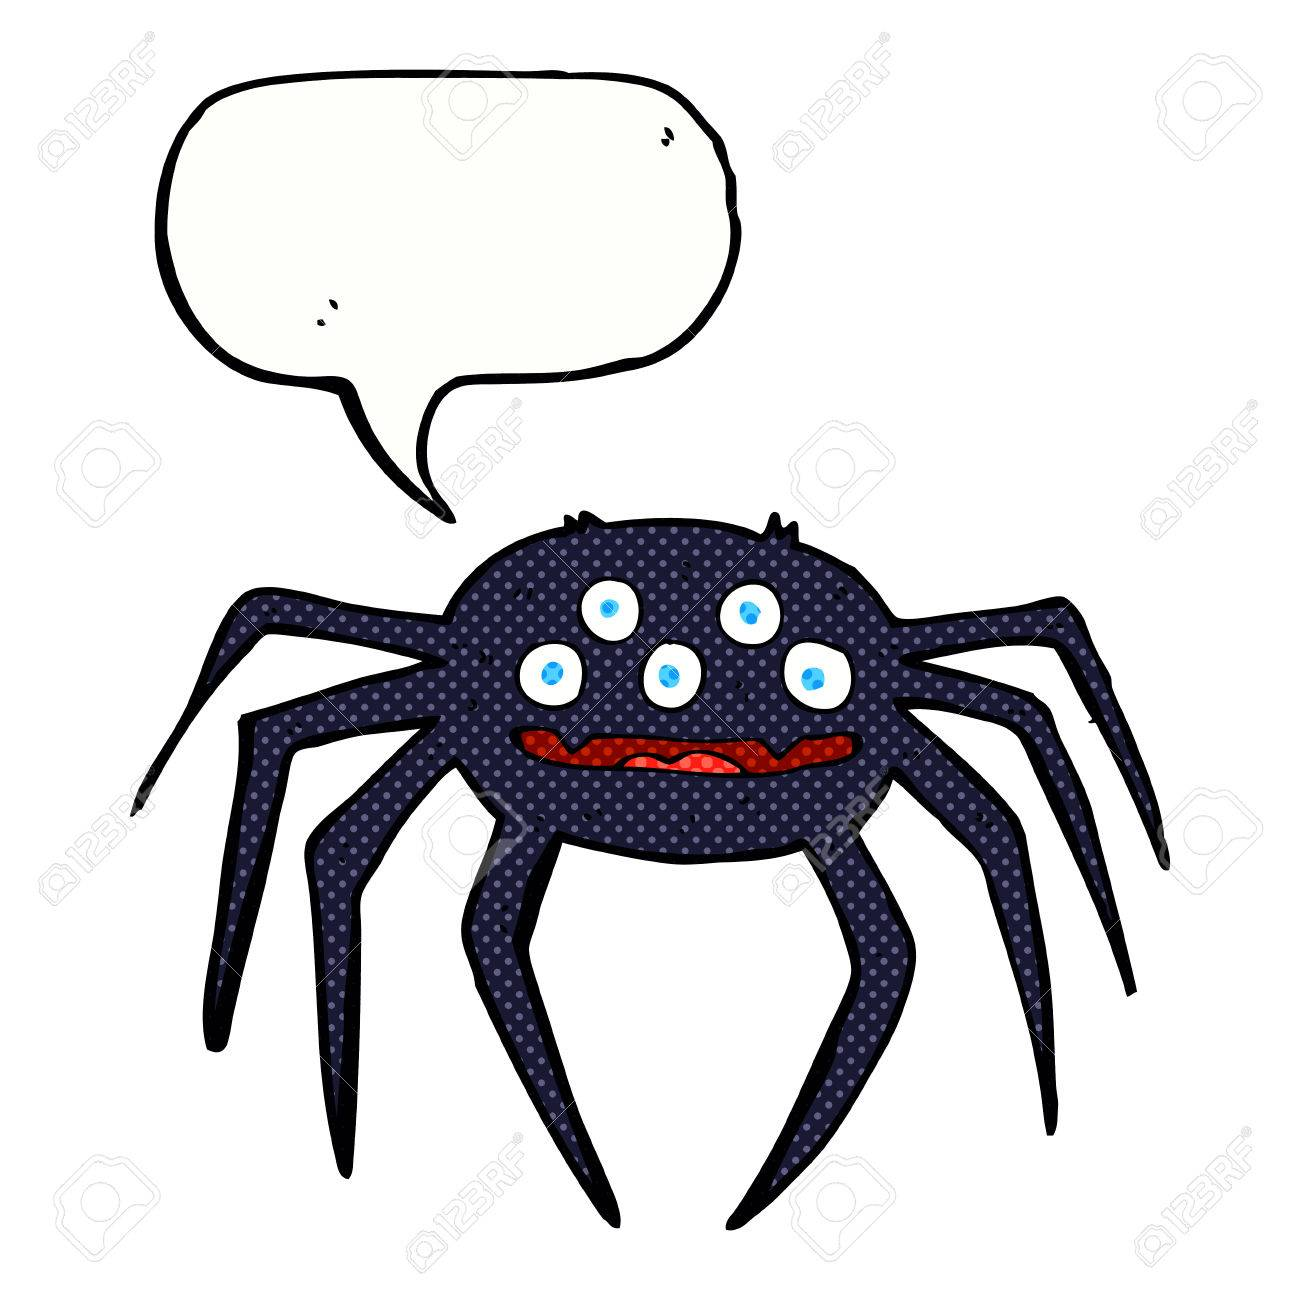 Cartoon Halloween Spider With Speech Bubble Royalty Free Cliparts ...